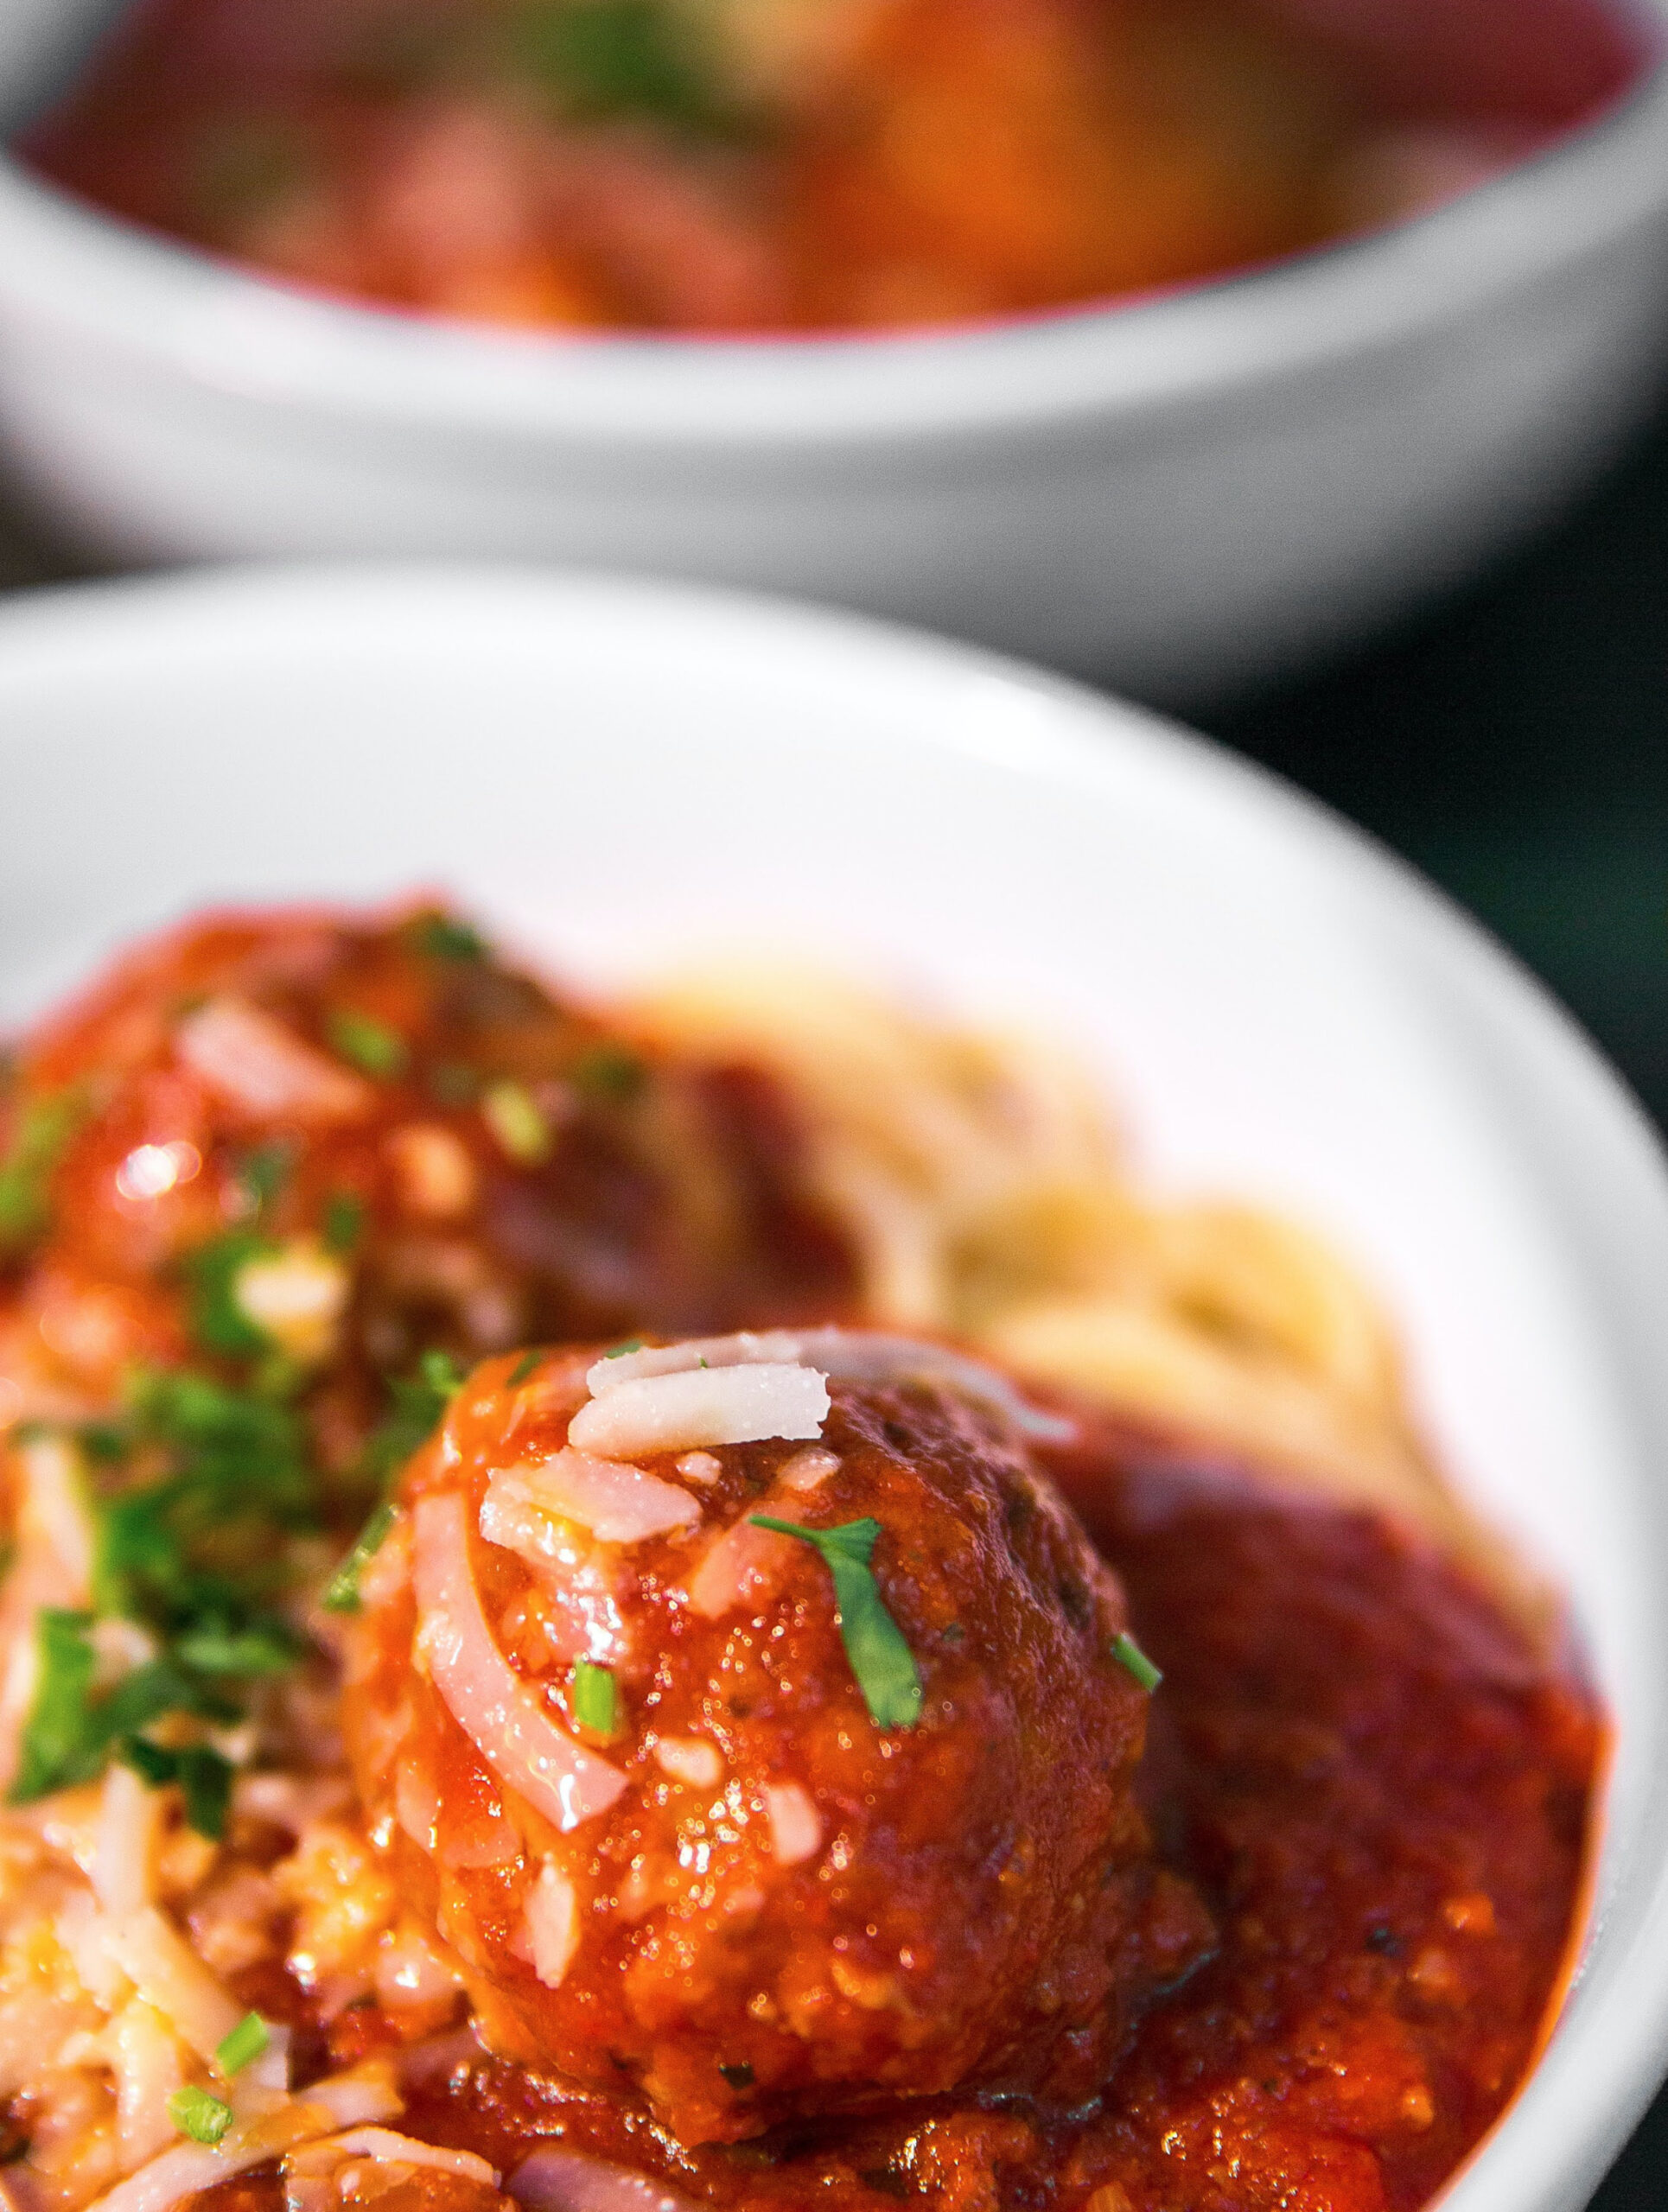 meatball in bowl